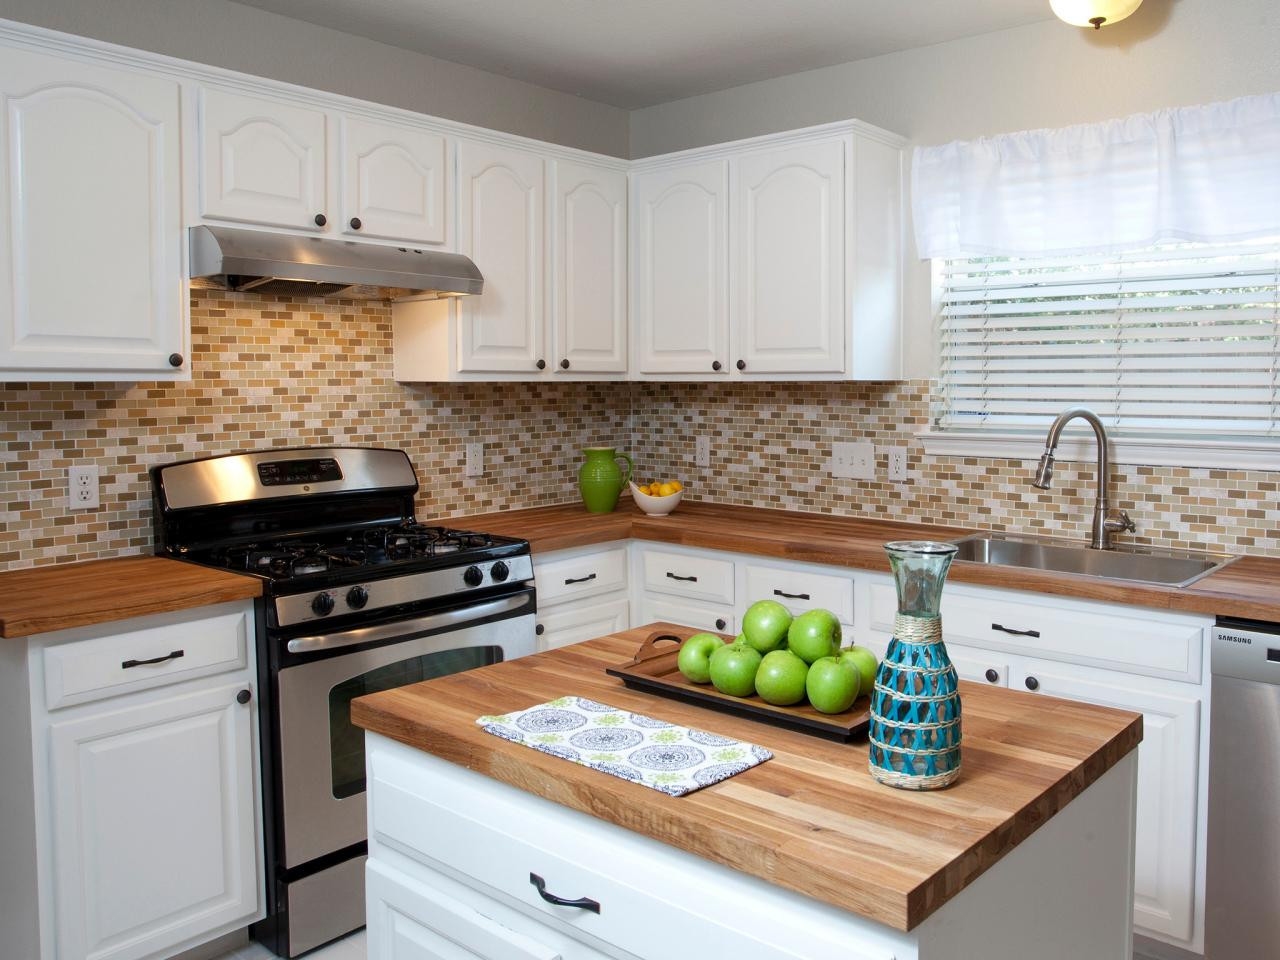 Kitchen Countertops Painting Kitchen Countertops Pictures Options & Ideas  Hgtv